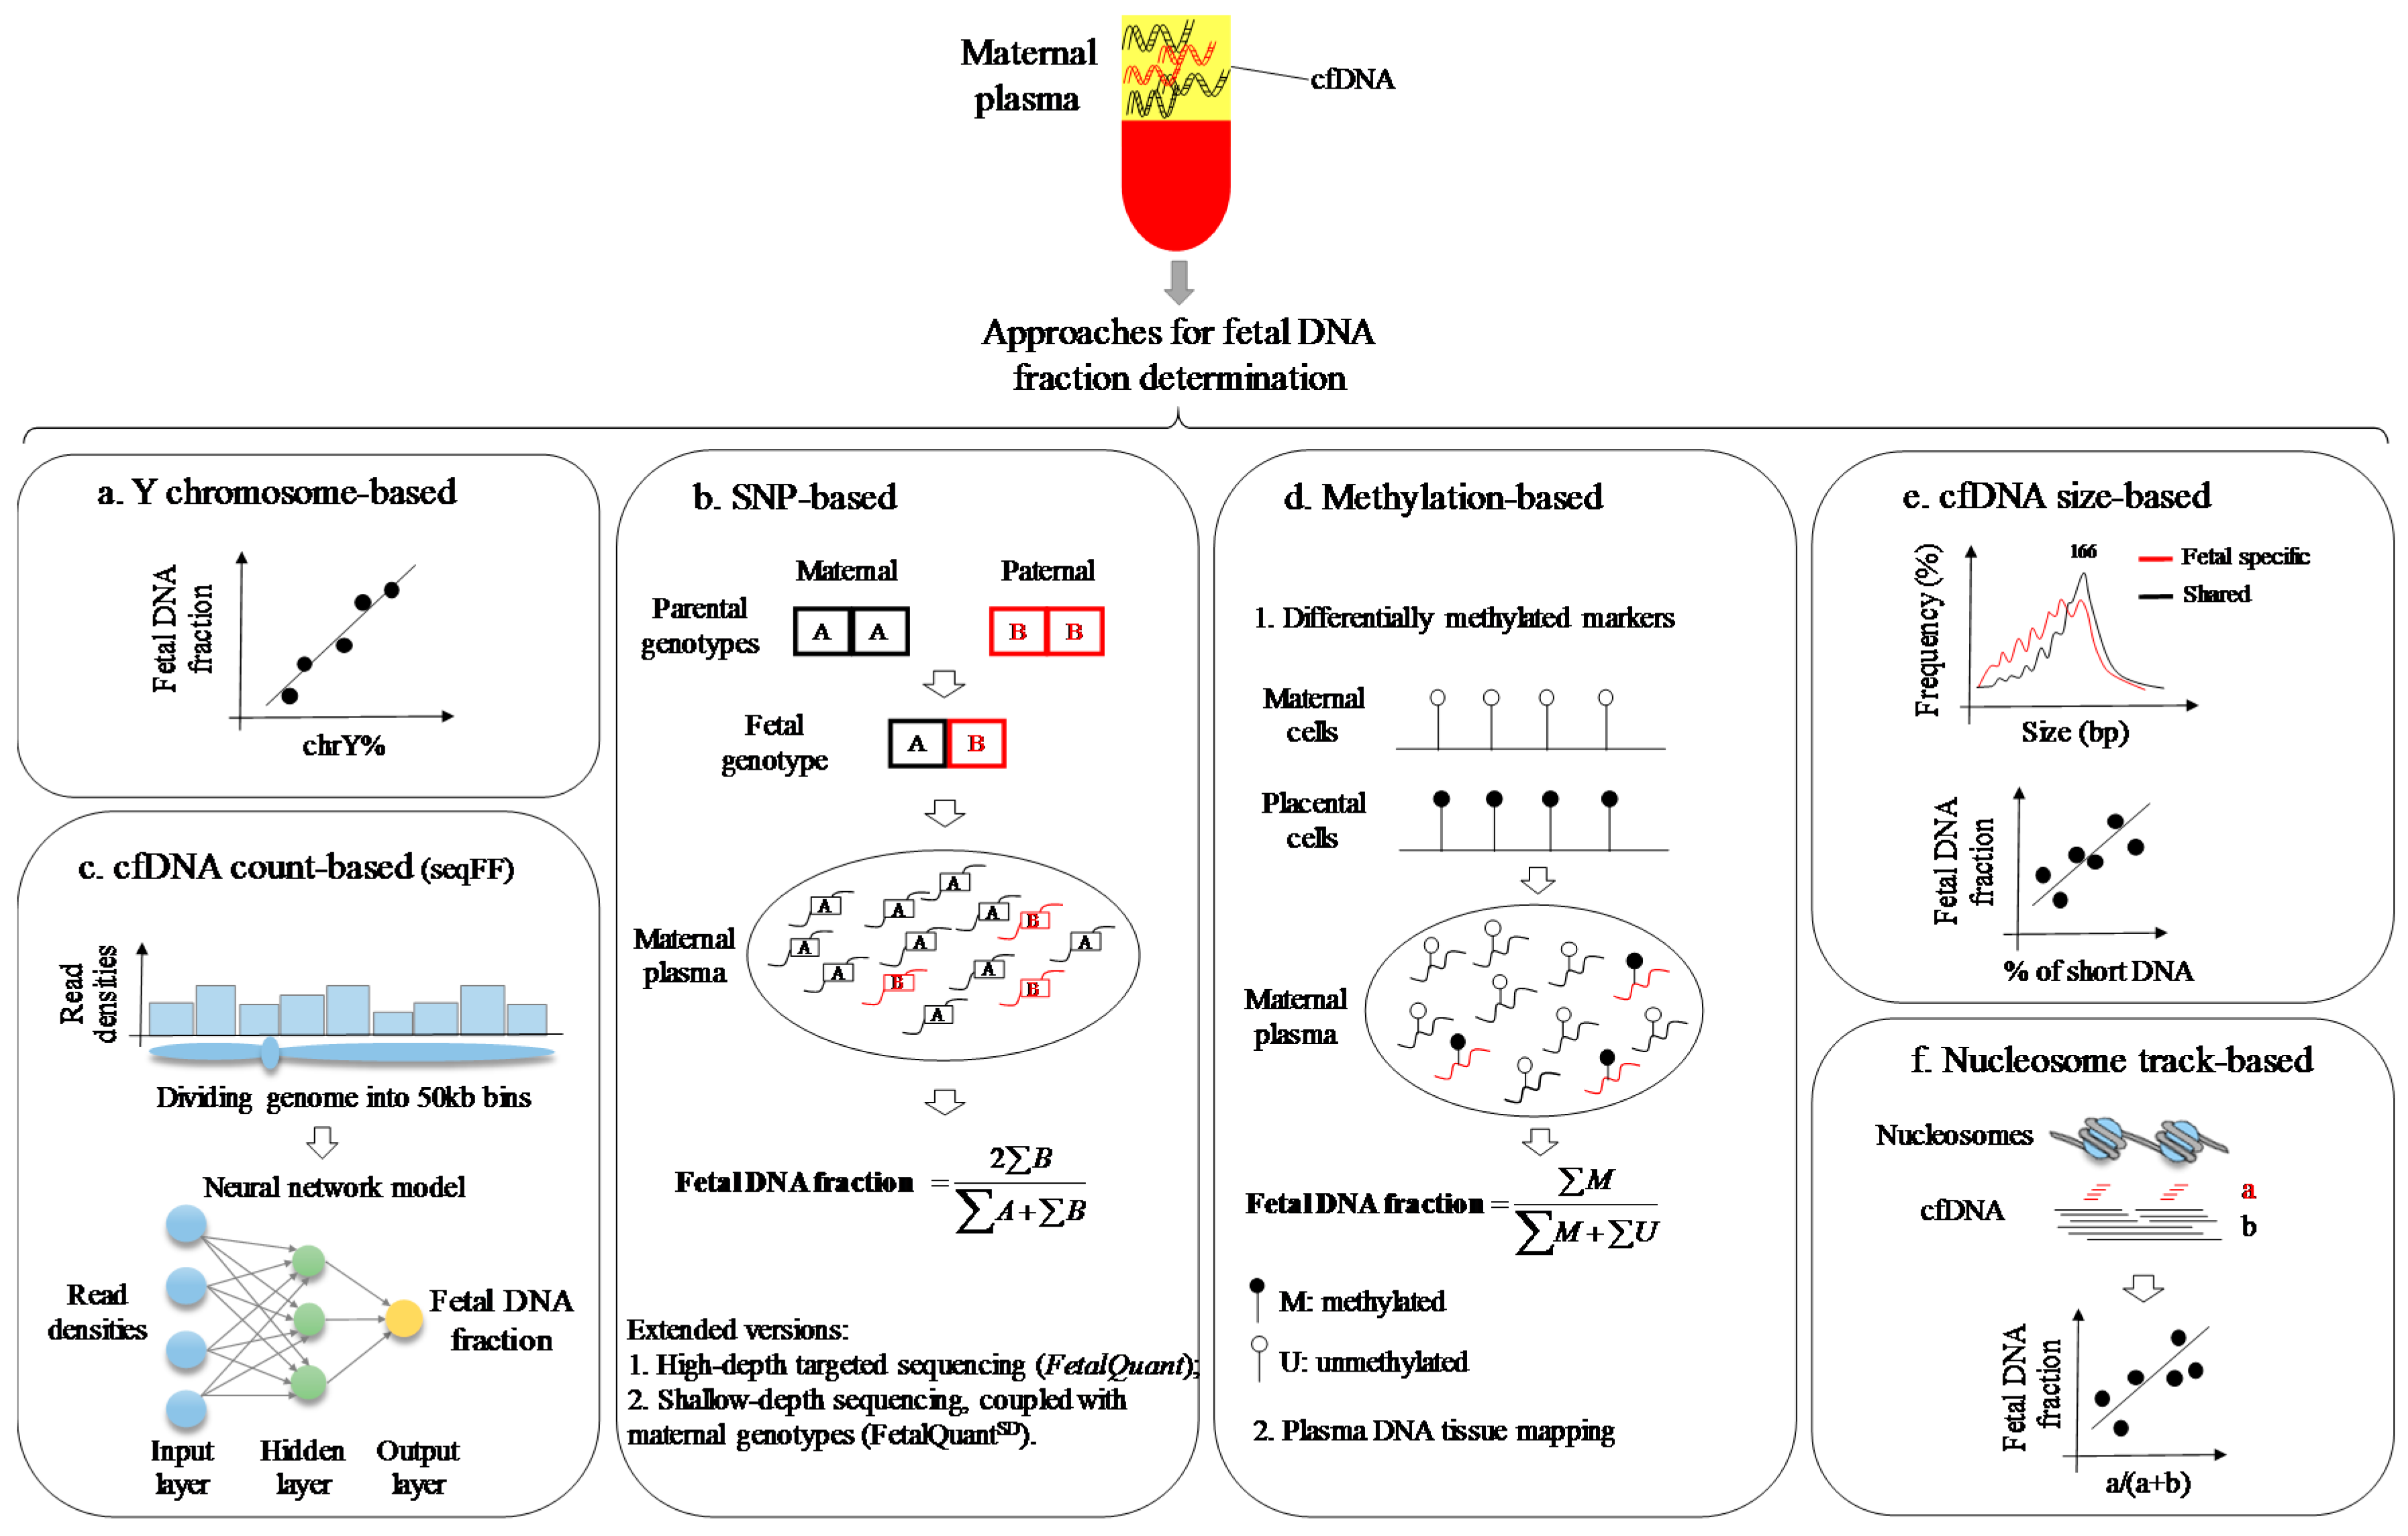 Unique Maternal Blood Dna Markers >> Ijms Free Full Text Bioinformatics Approaches For Fetal Dna